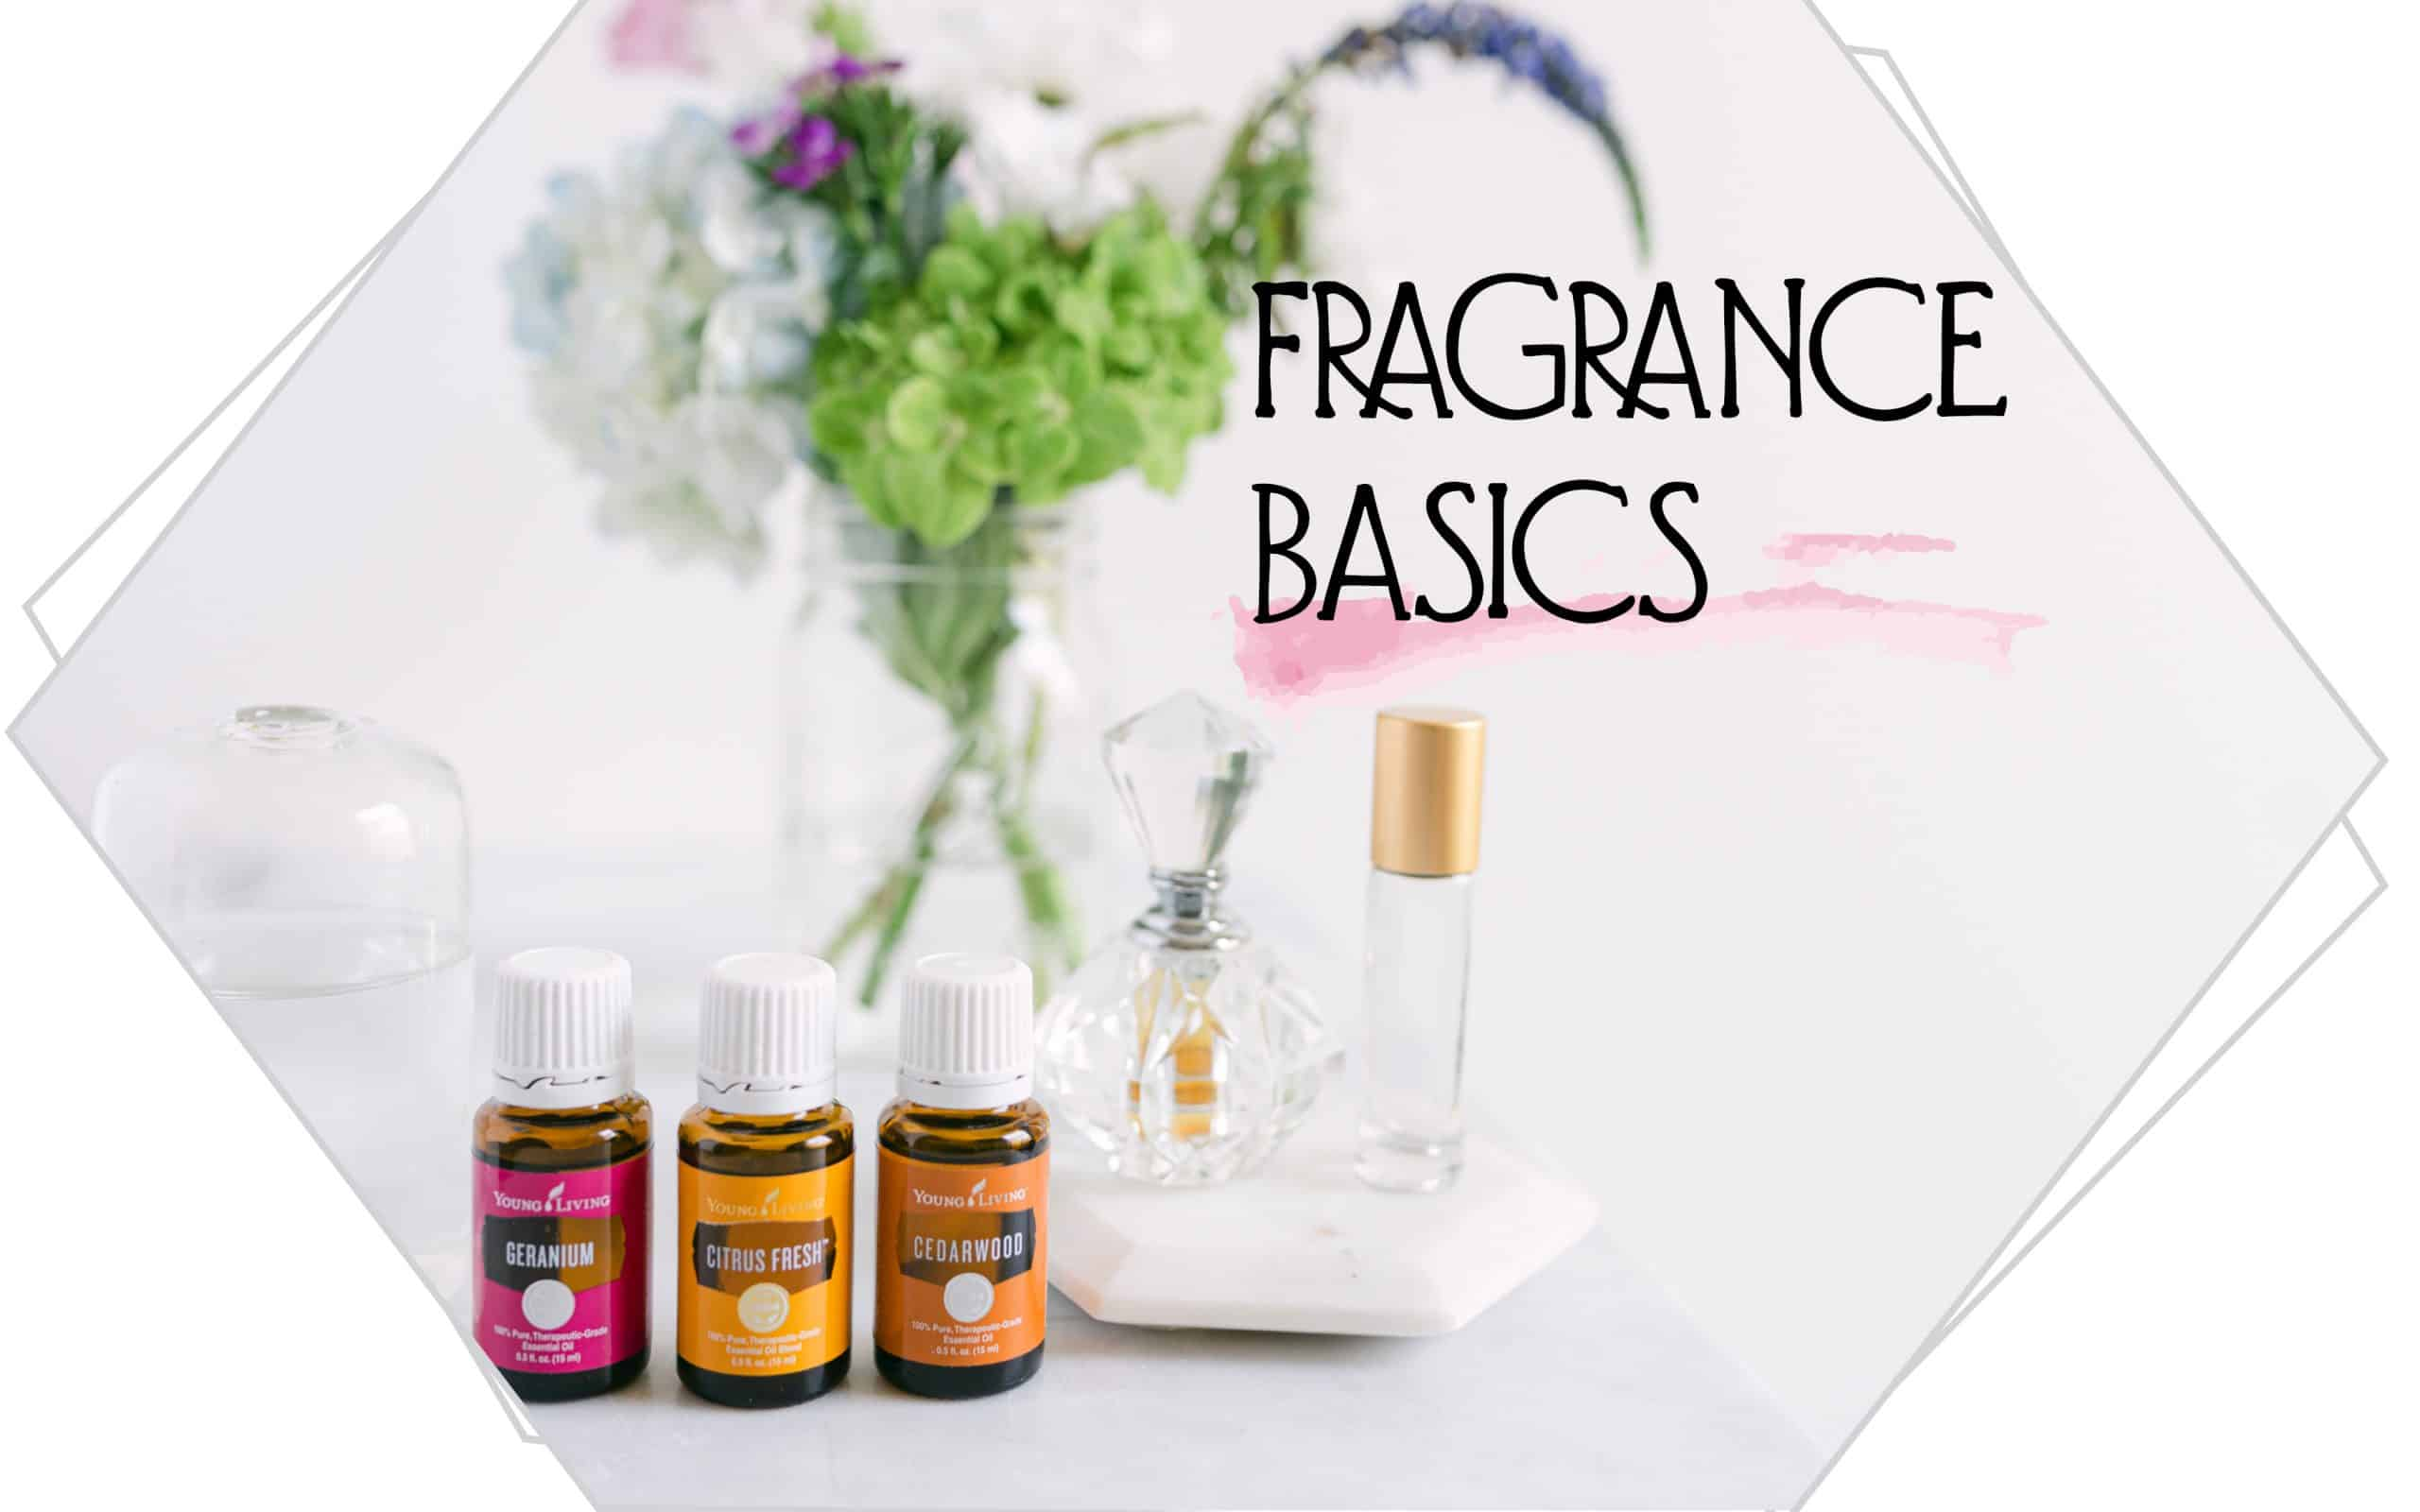 fragrance basics words with essential oil bottles on a white background